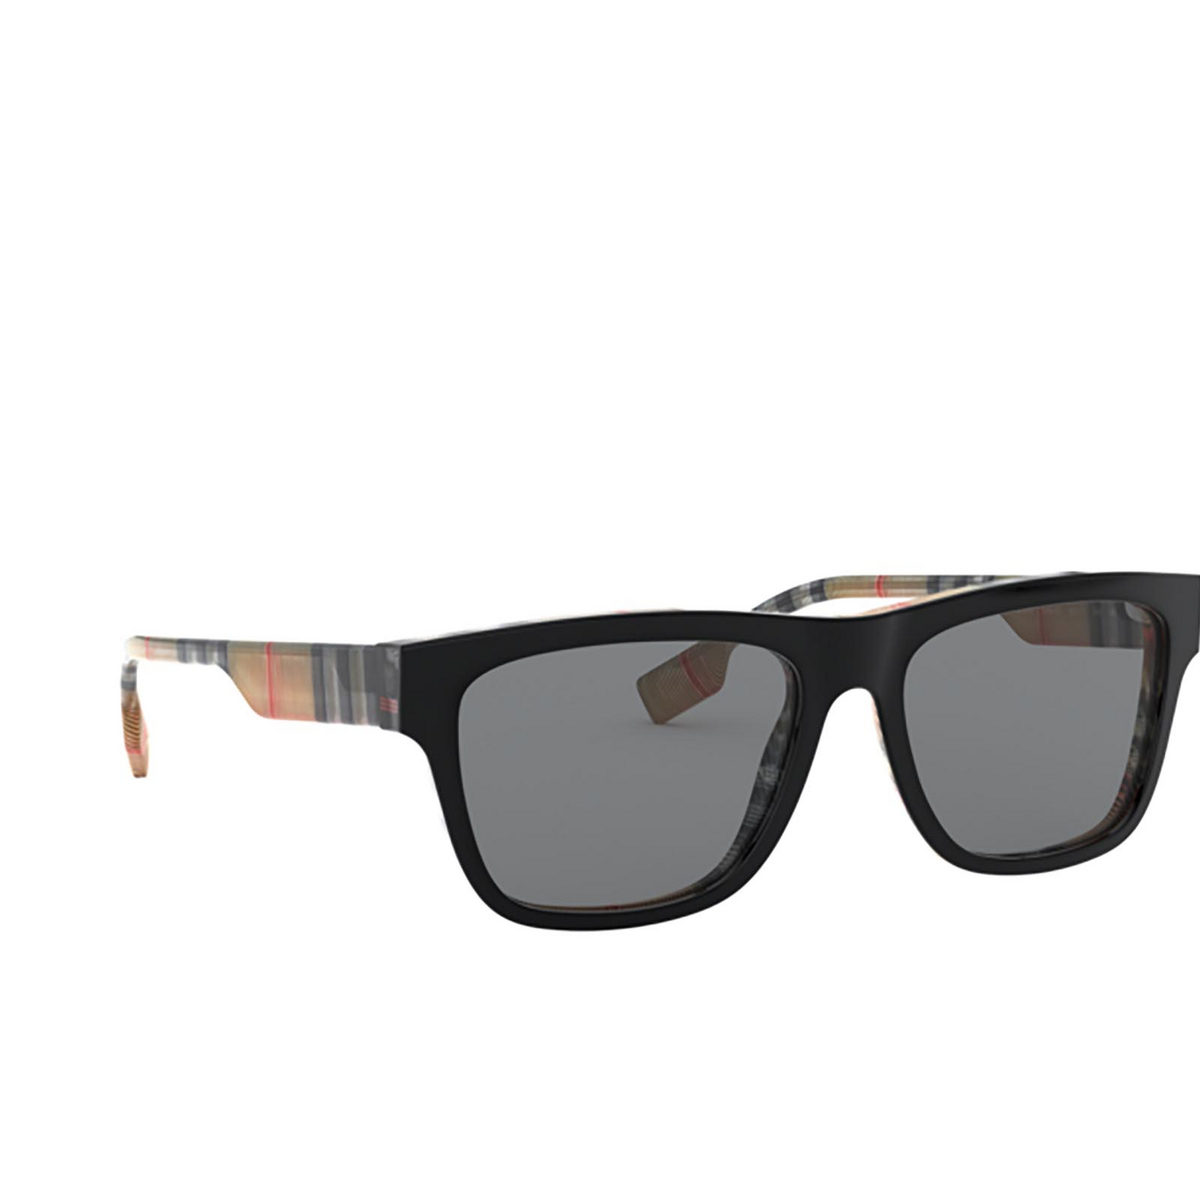 Burberry® Square Sunglasses: BE4293 color Top Black On Vintage Check 380687 - three-quarters view.